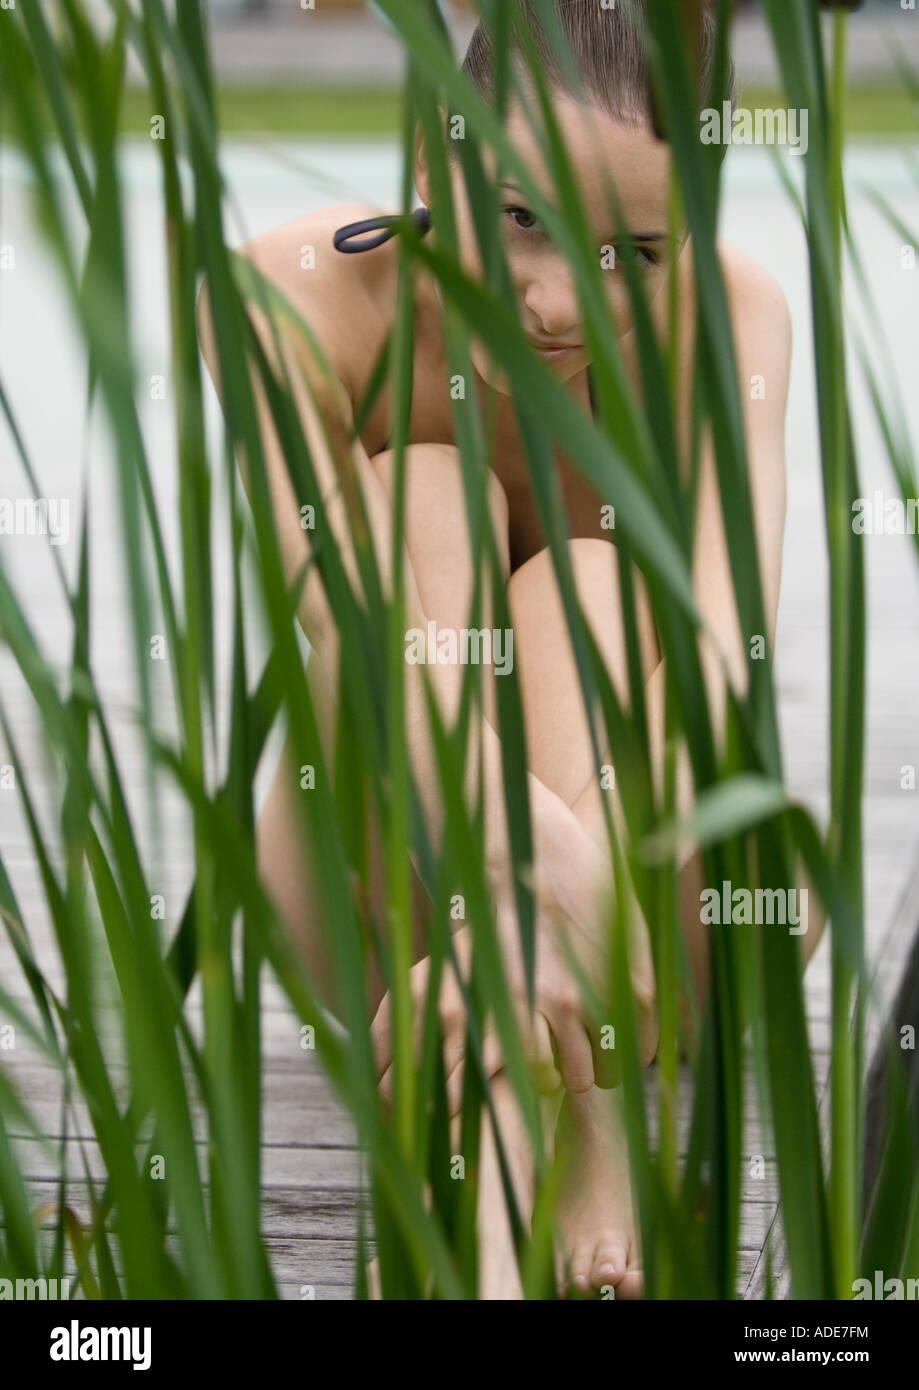 Young woman sitting on deck in swimsuit, reeds in foreground, looking at camera - Stock Image